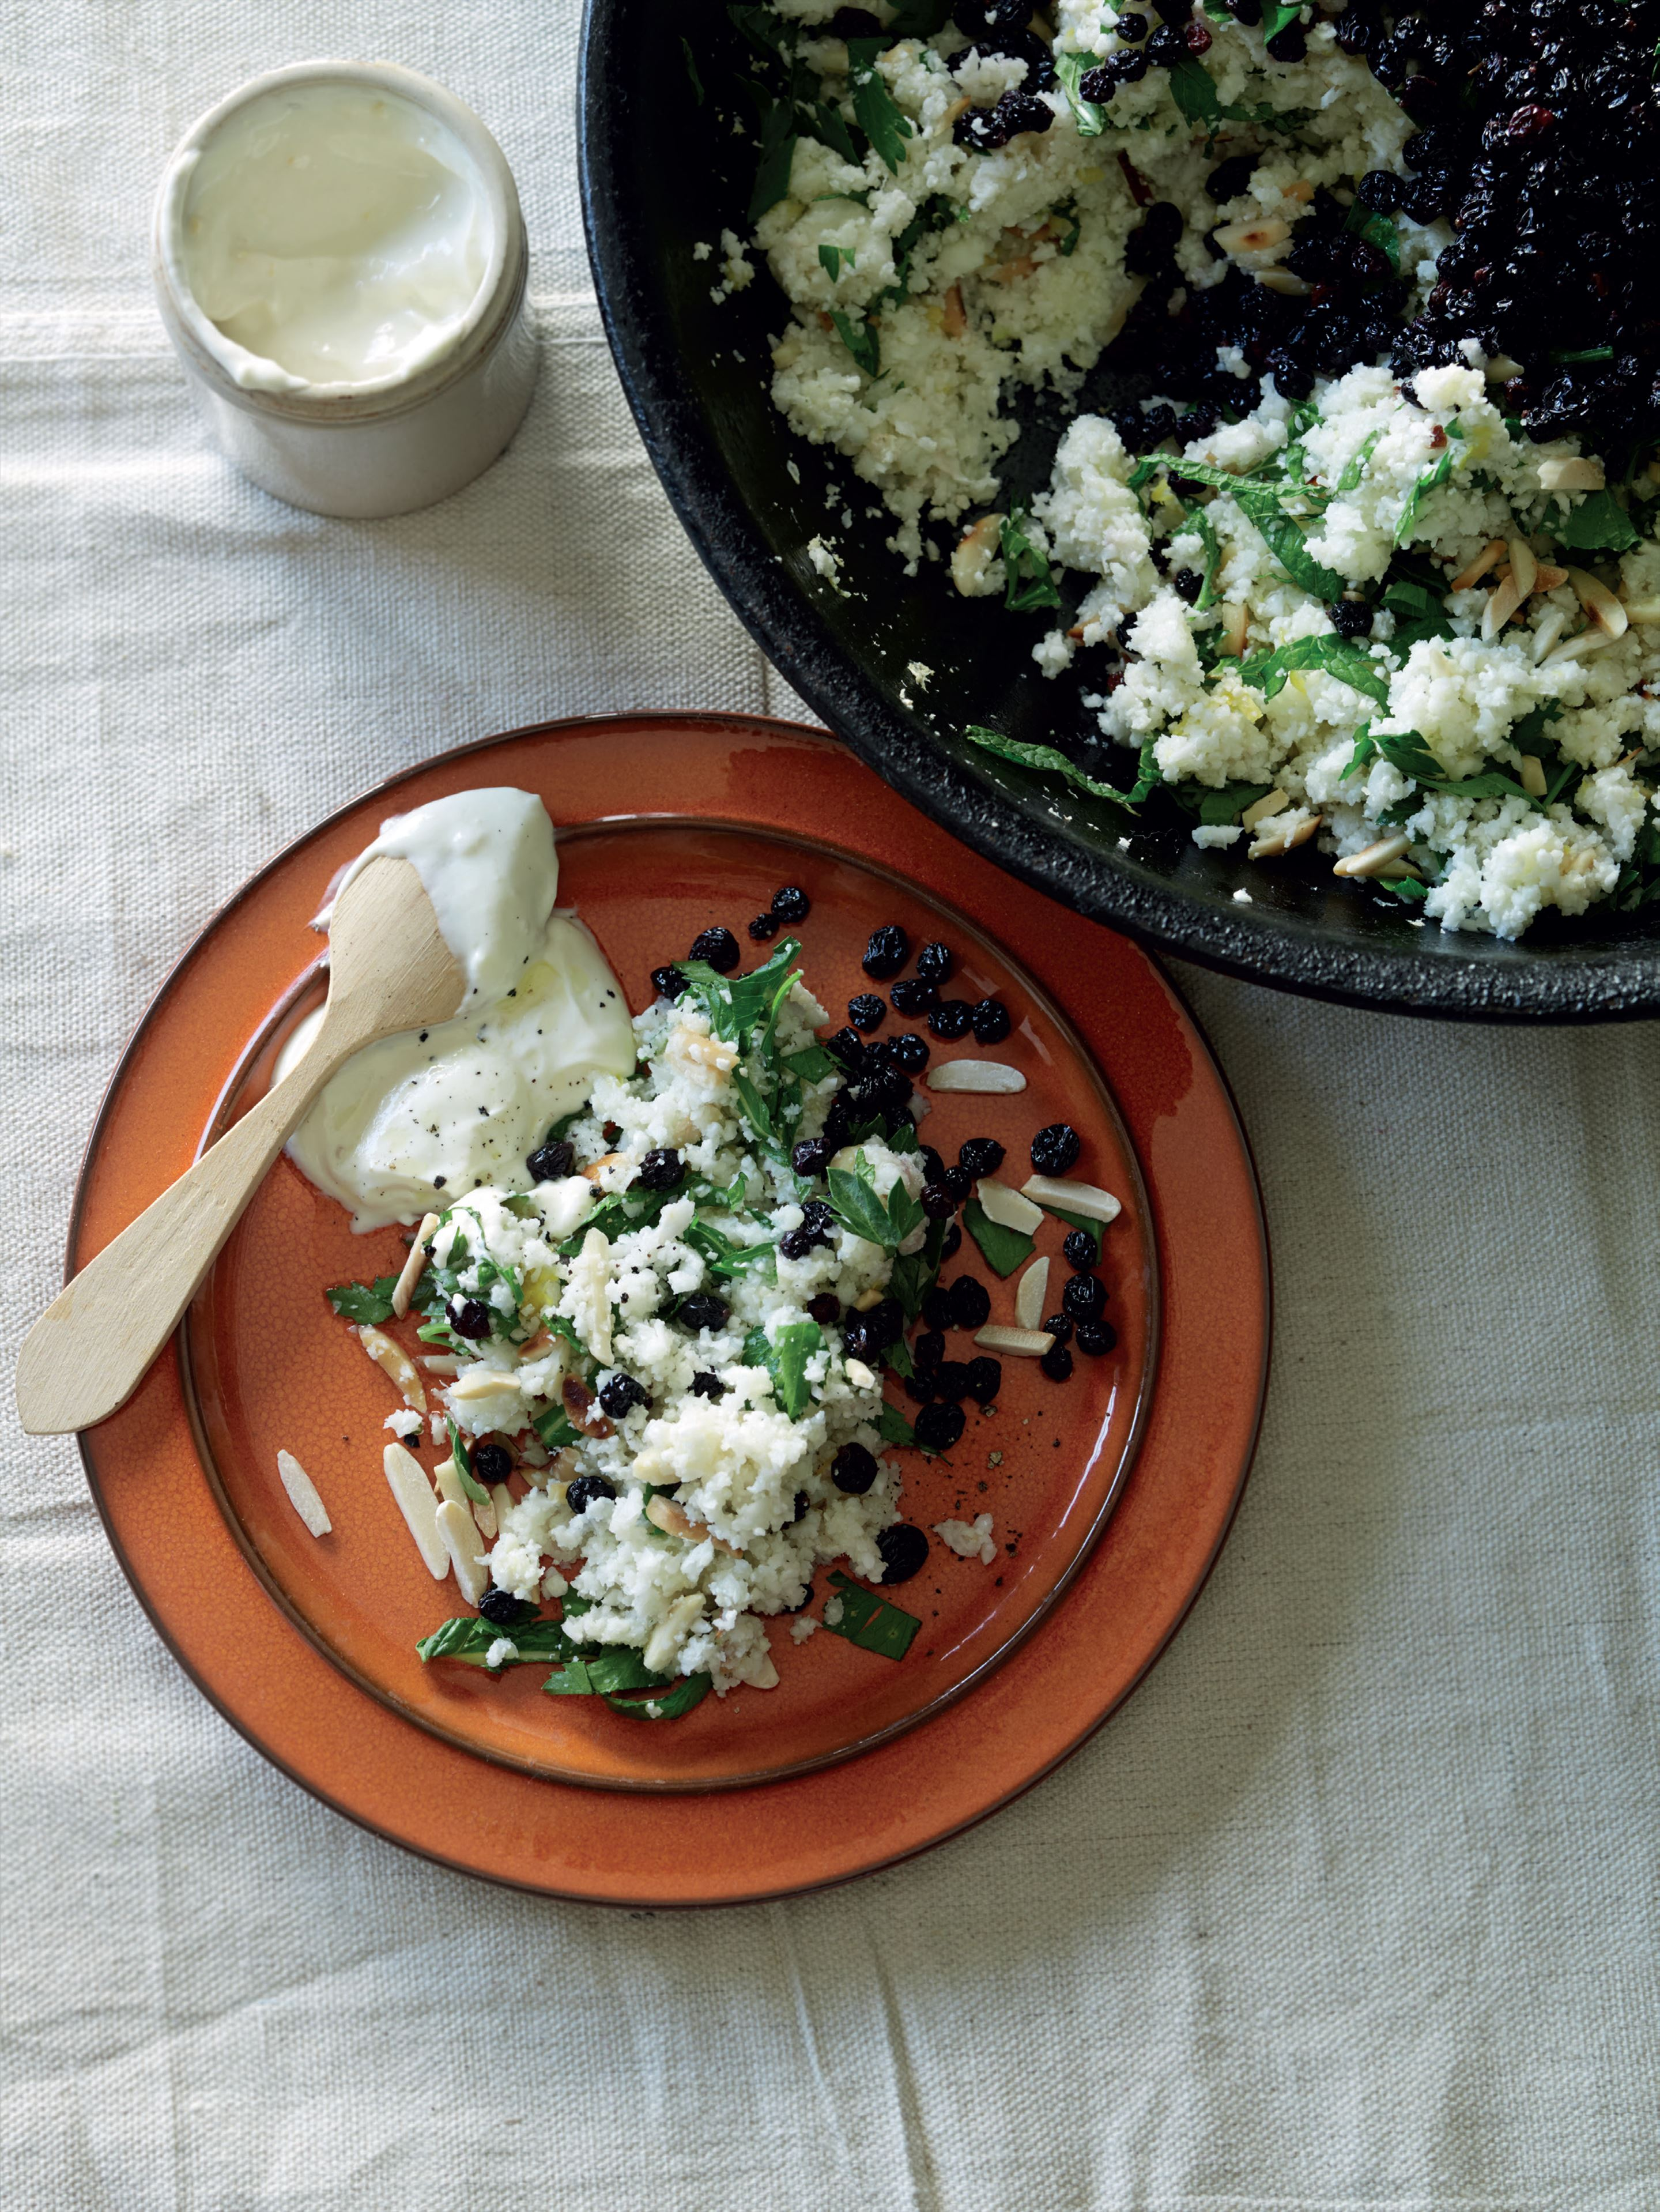 Cauliflower 'couscous' with almonds, currants and mint